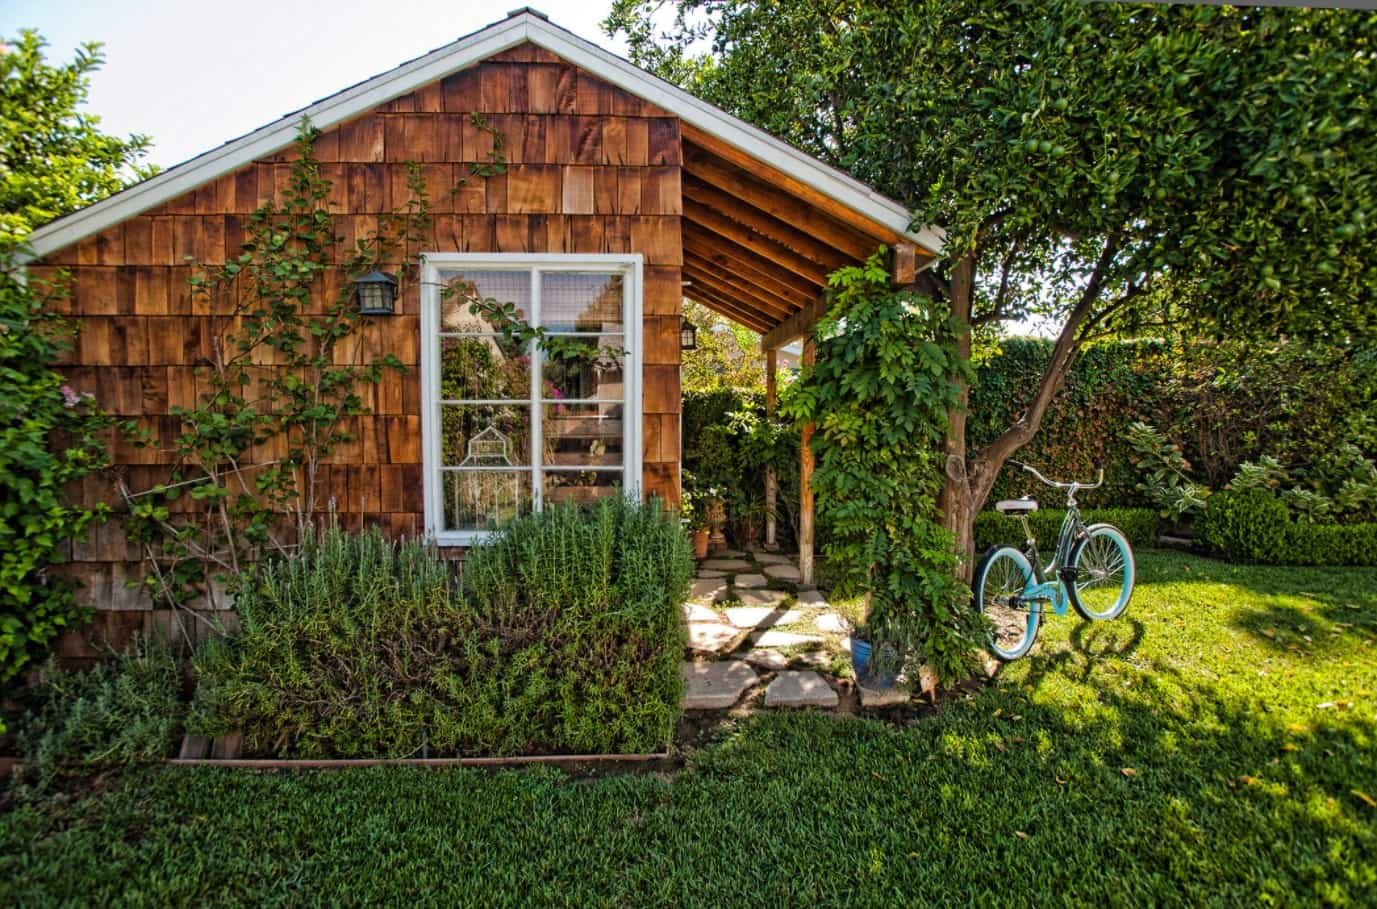 The Best Way to Clean Your Garden Shed. Colorful picture of the outdoor shed with planked facade and gable roof